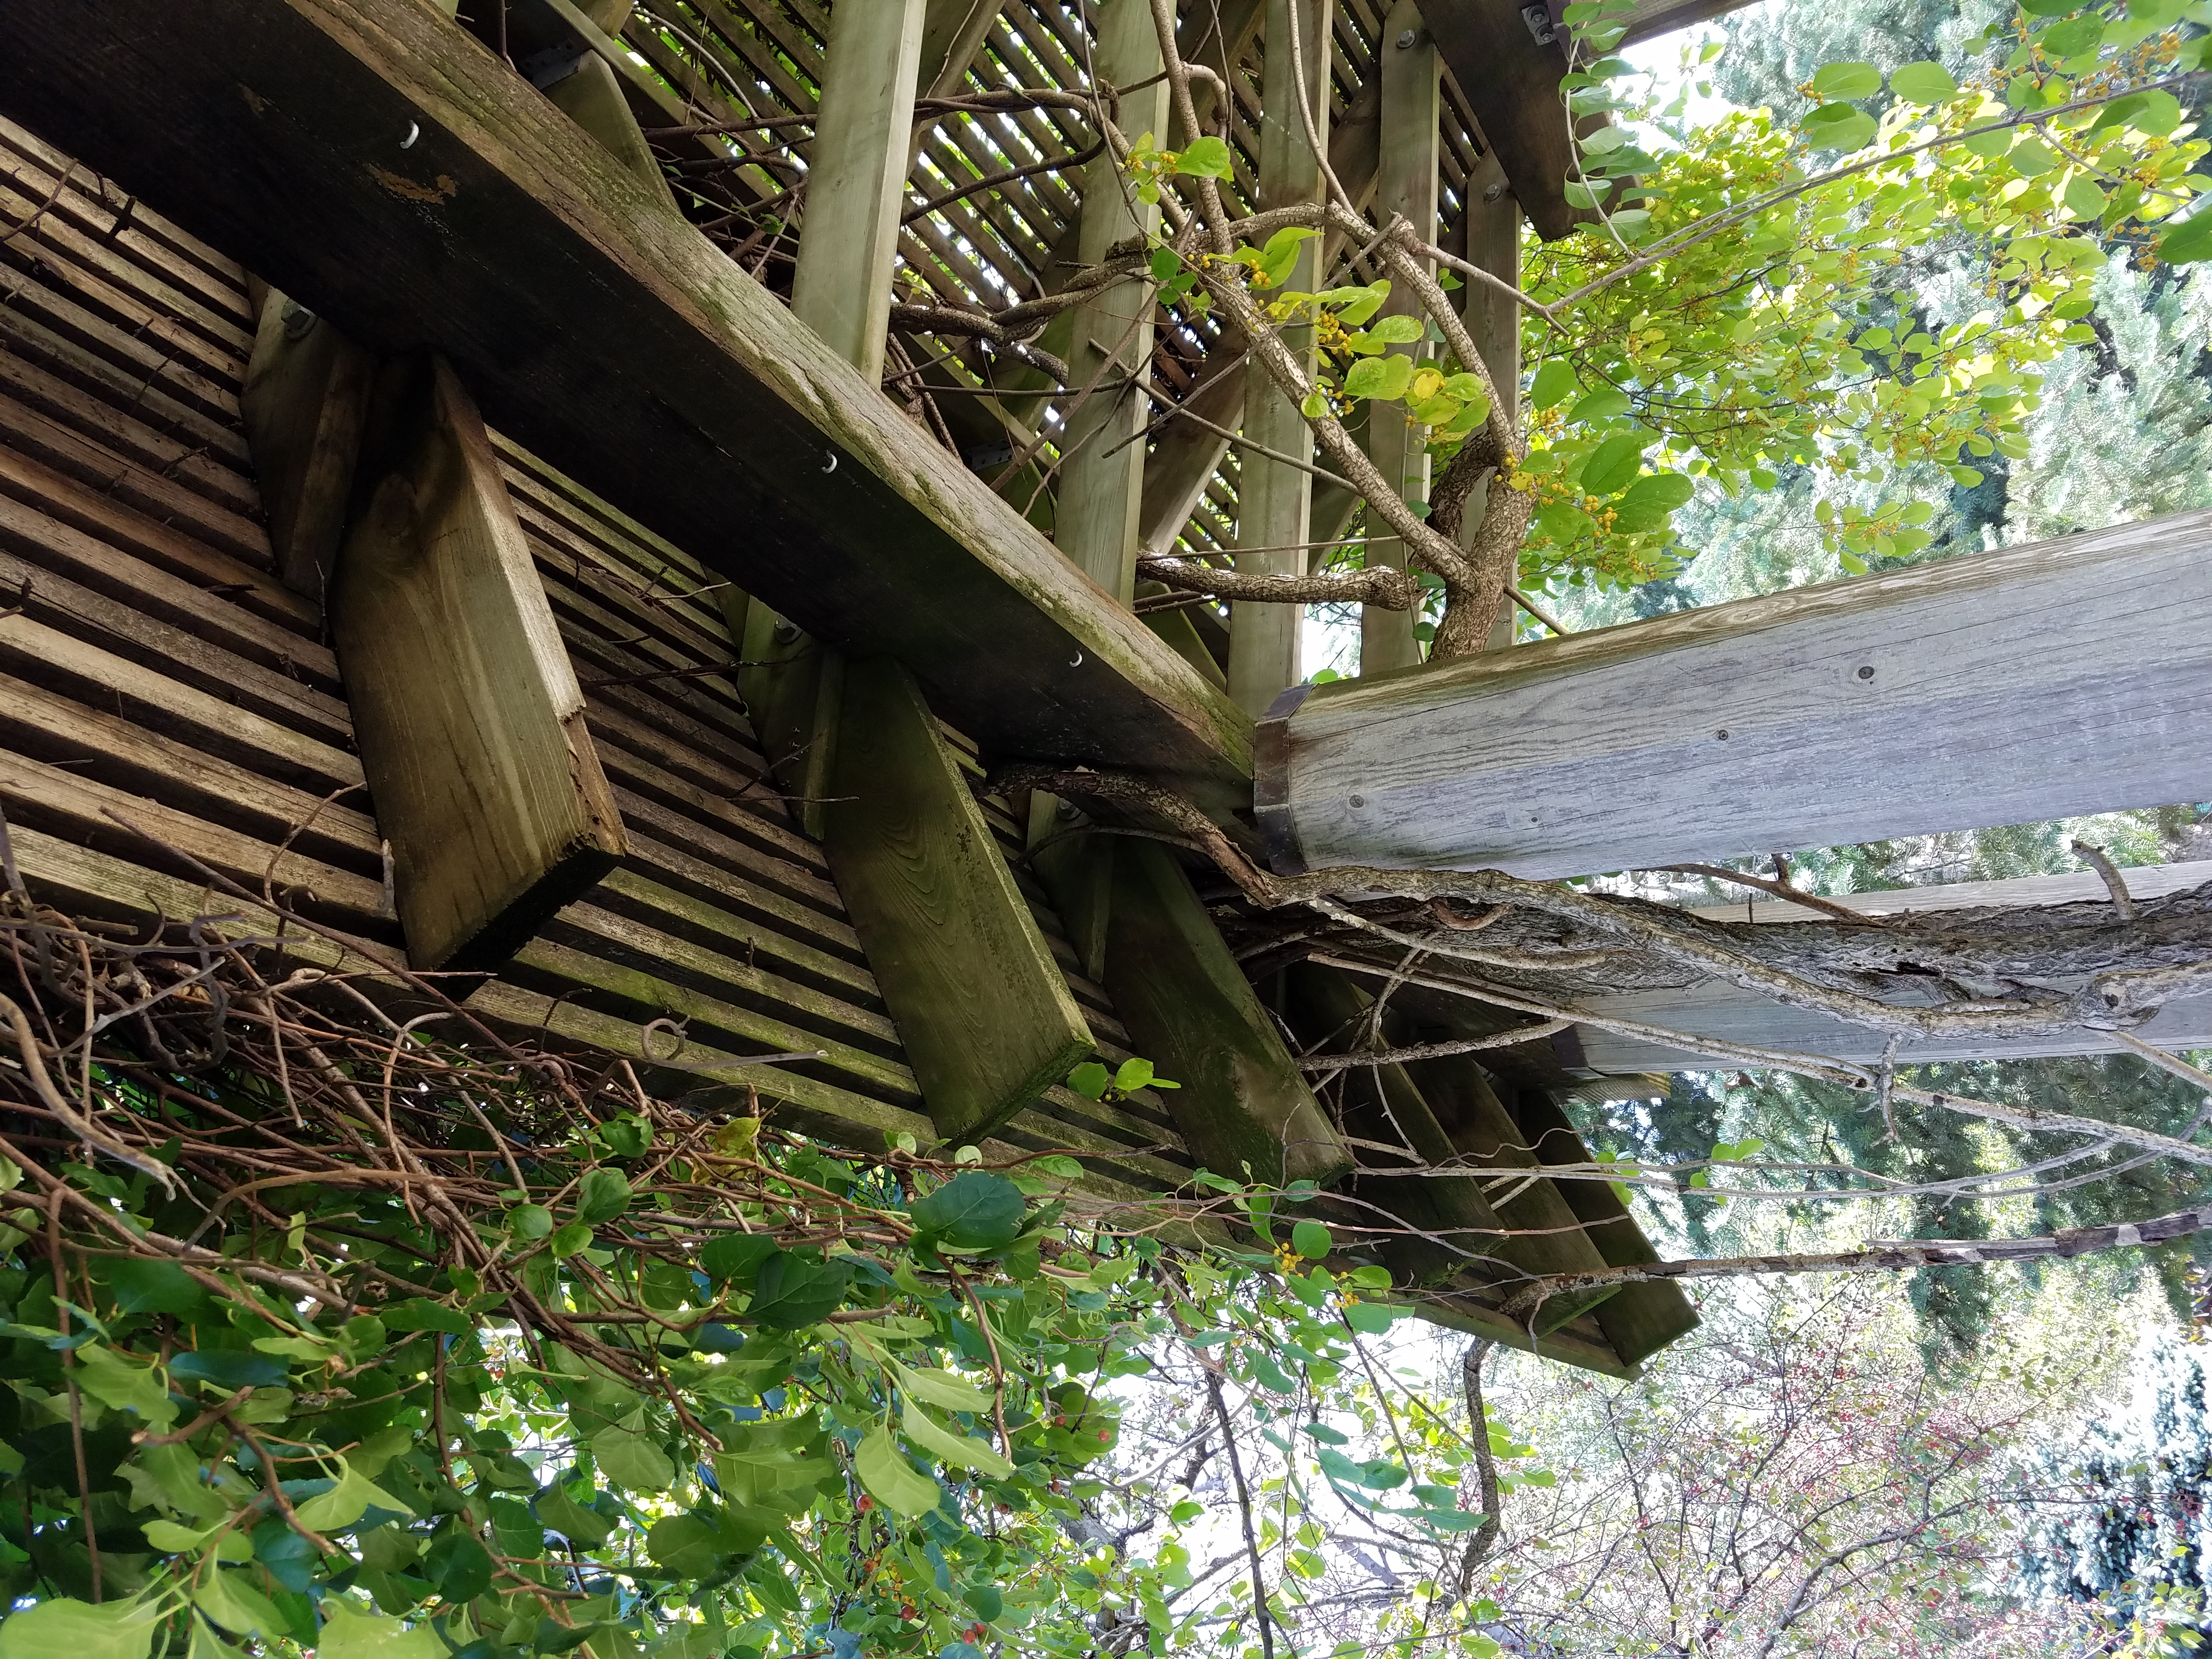 vines-on-a-trellis-638.jpg